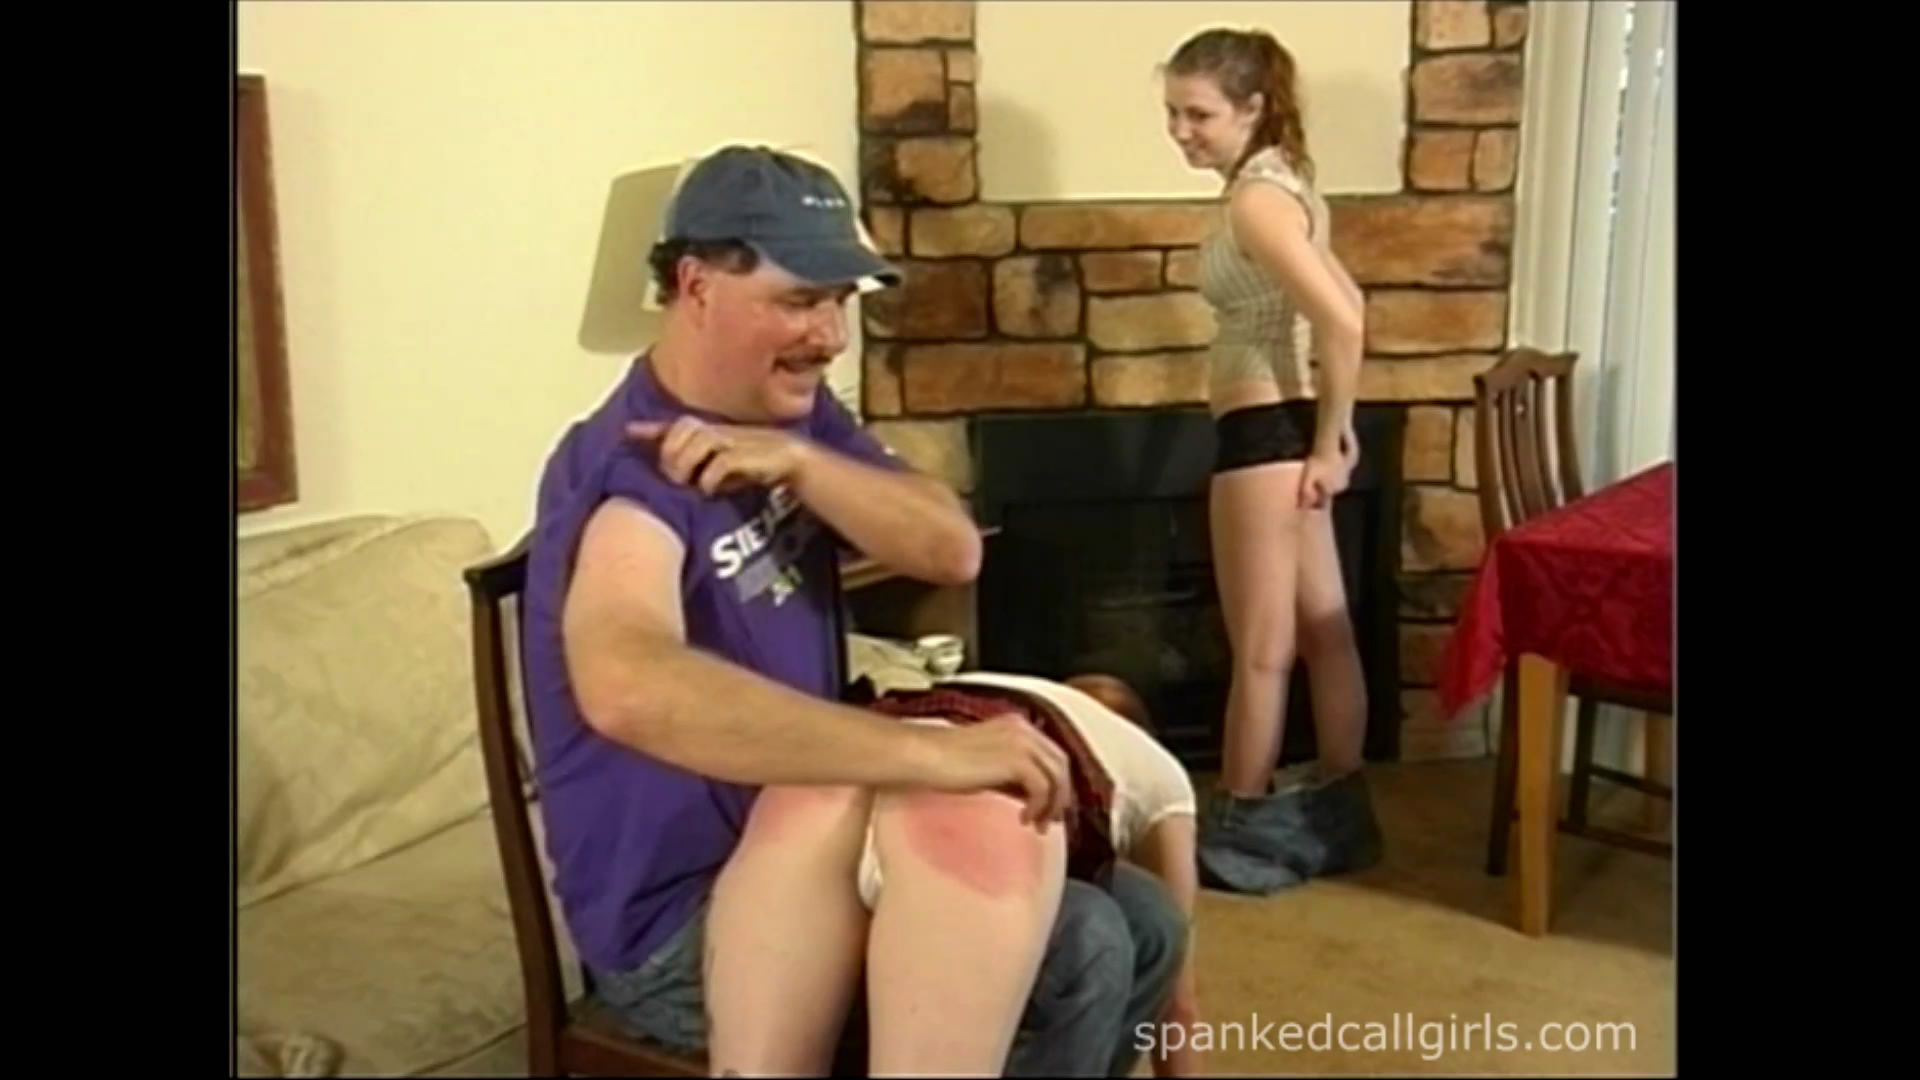 Spanked Call Girls – MP4/Full HD – Heather Smyth, Kister – Heather And Kister Get Spanked